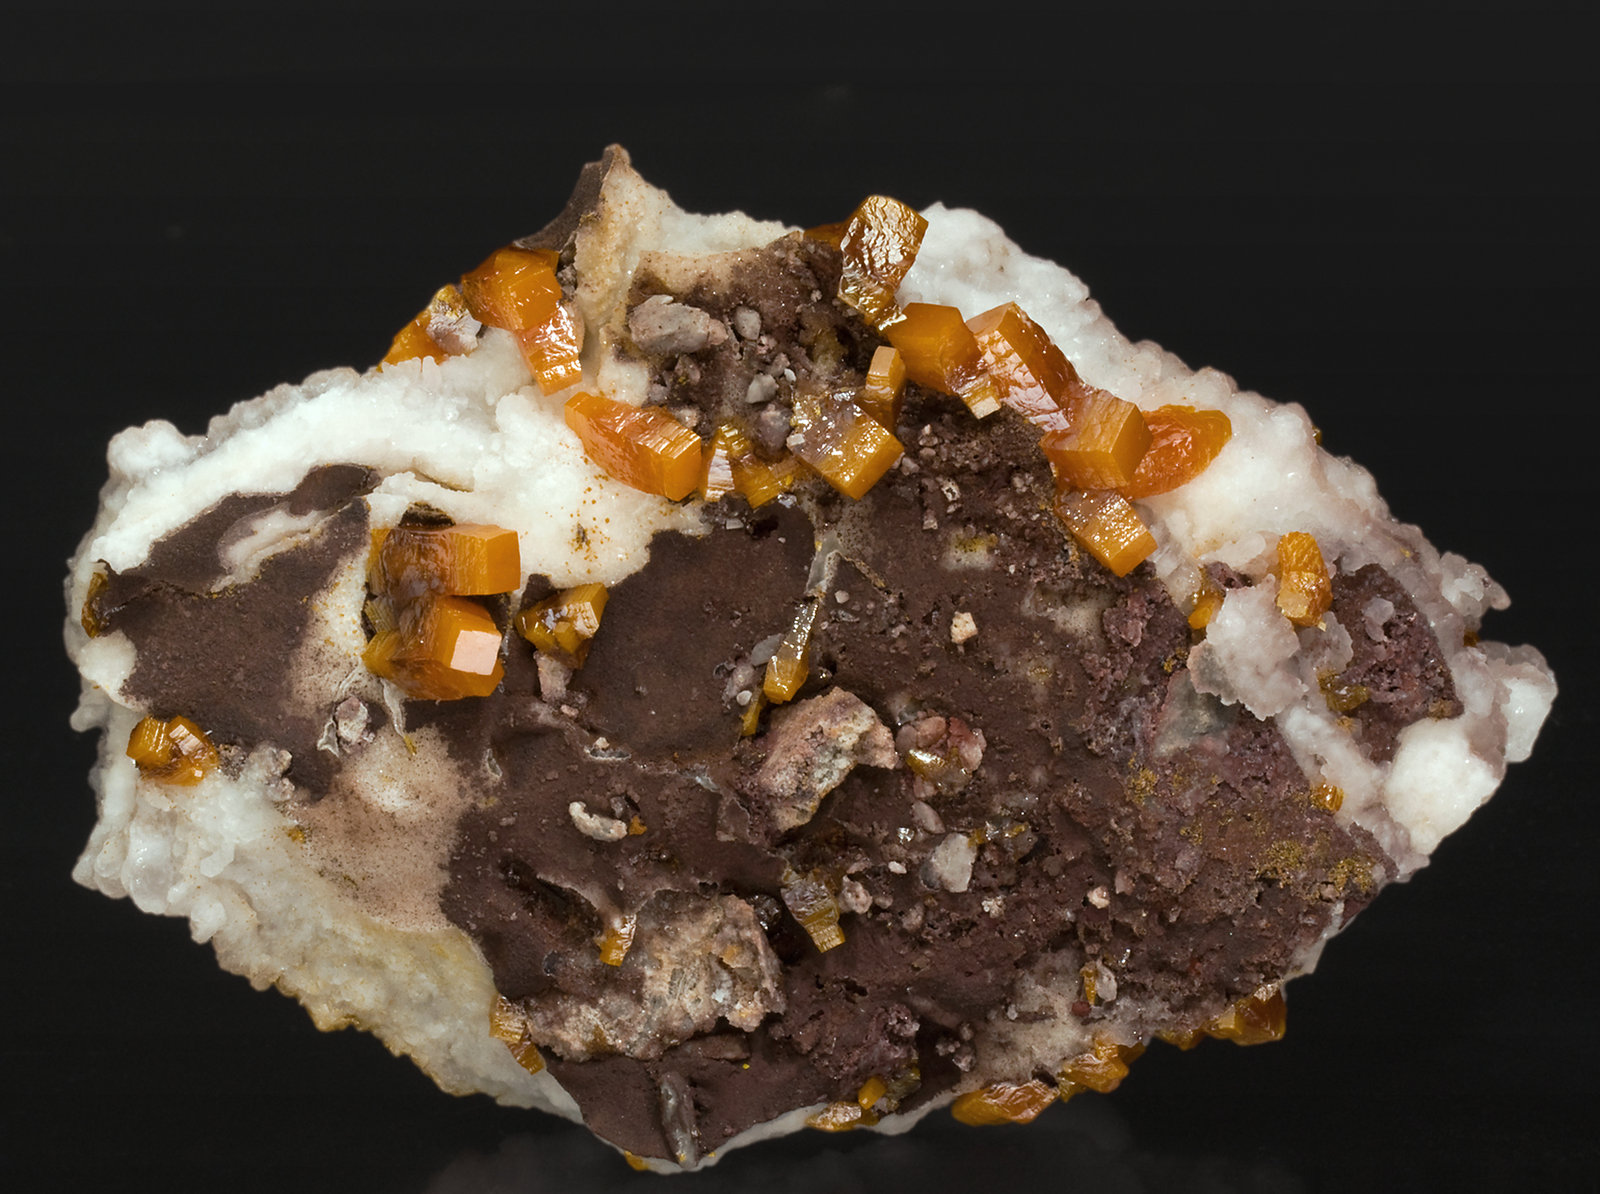 specimens/s_imagesS7/Wulfenite-RQ86S7f.jpg